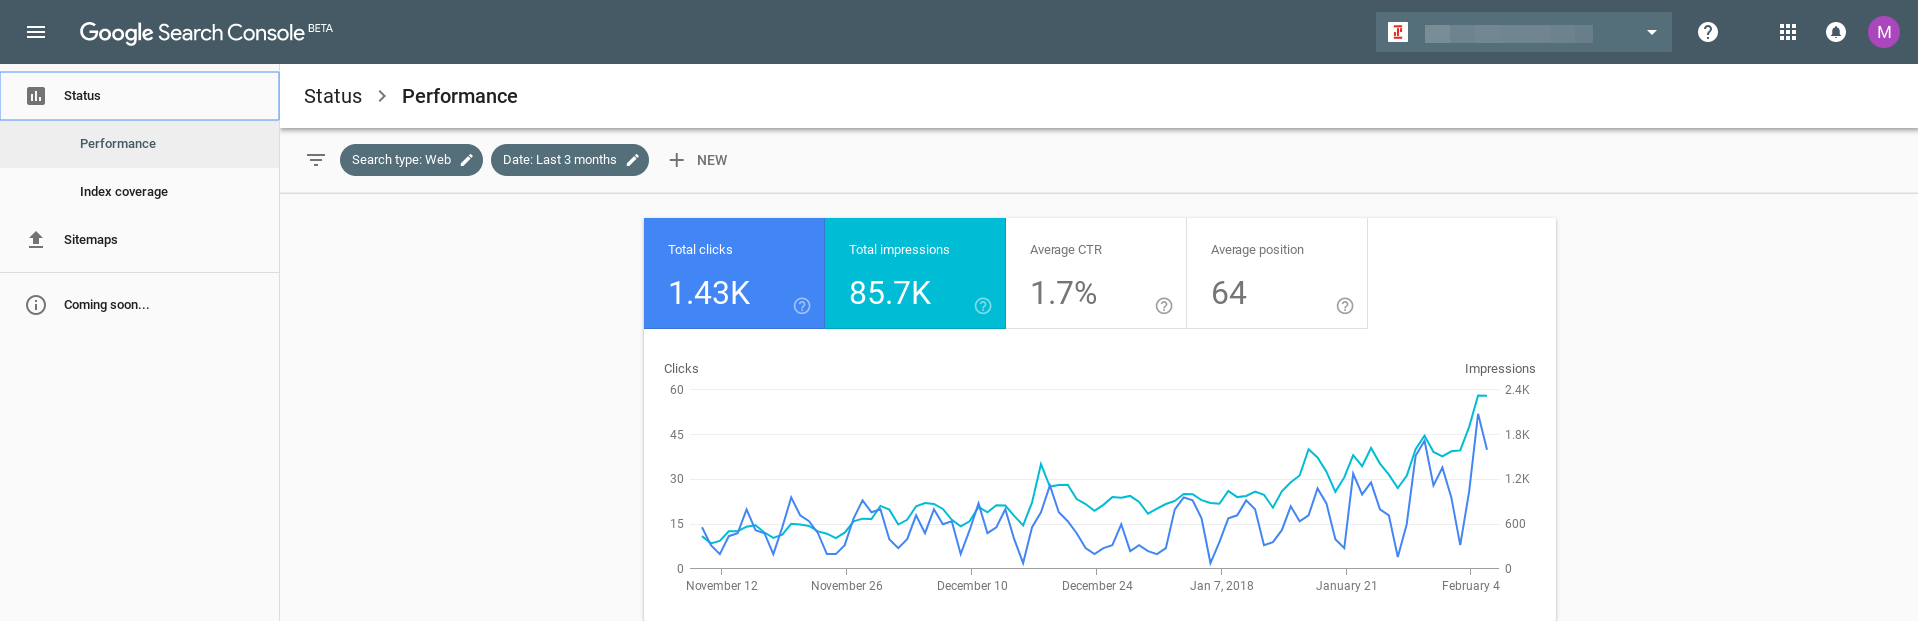 Search Console Select Clicks and Impressions